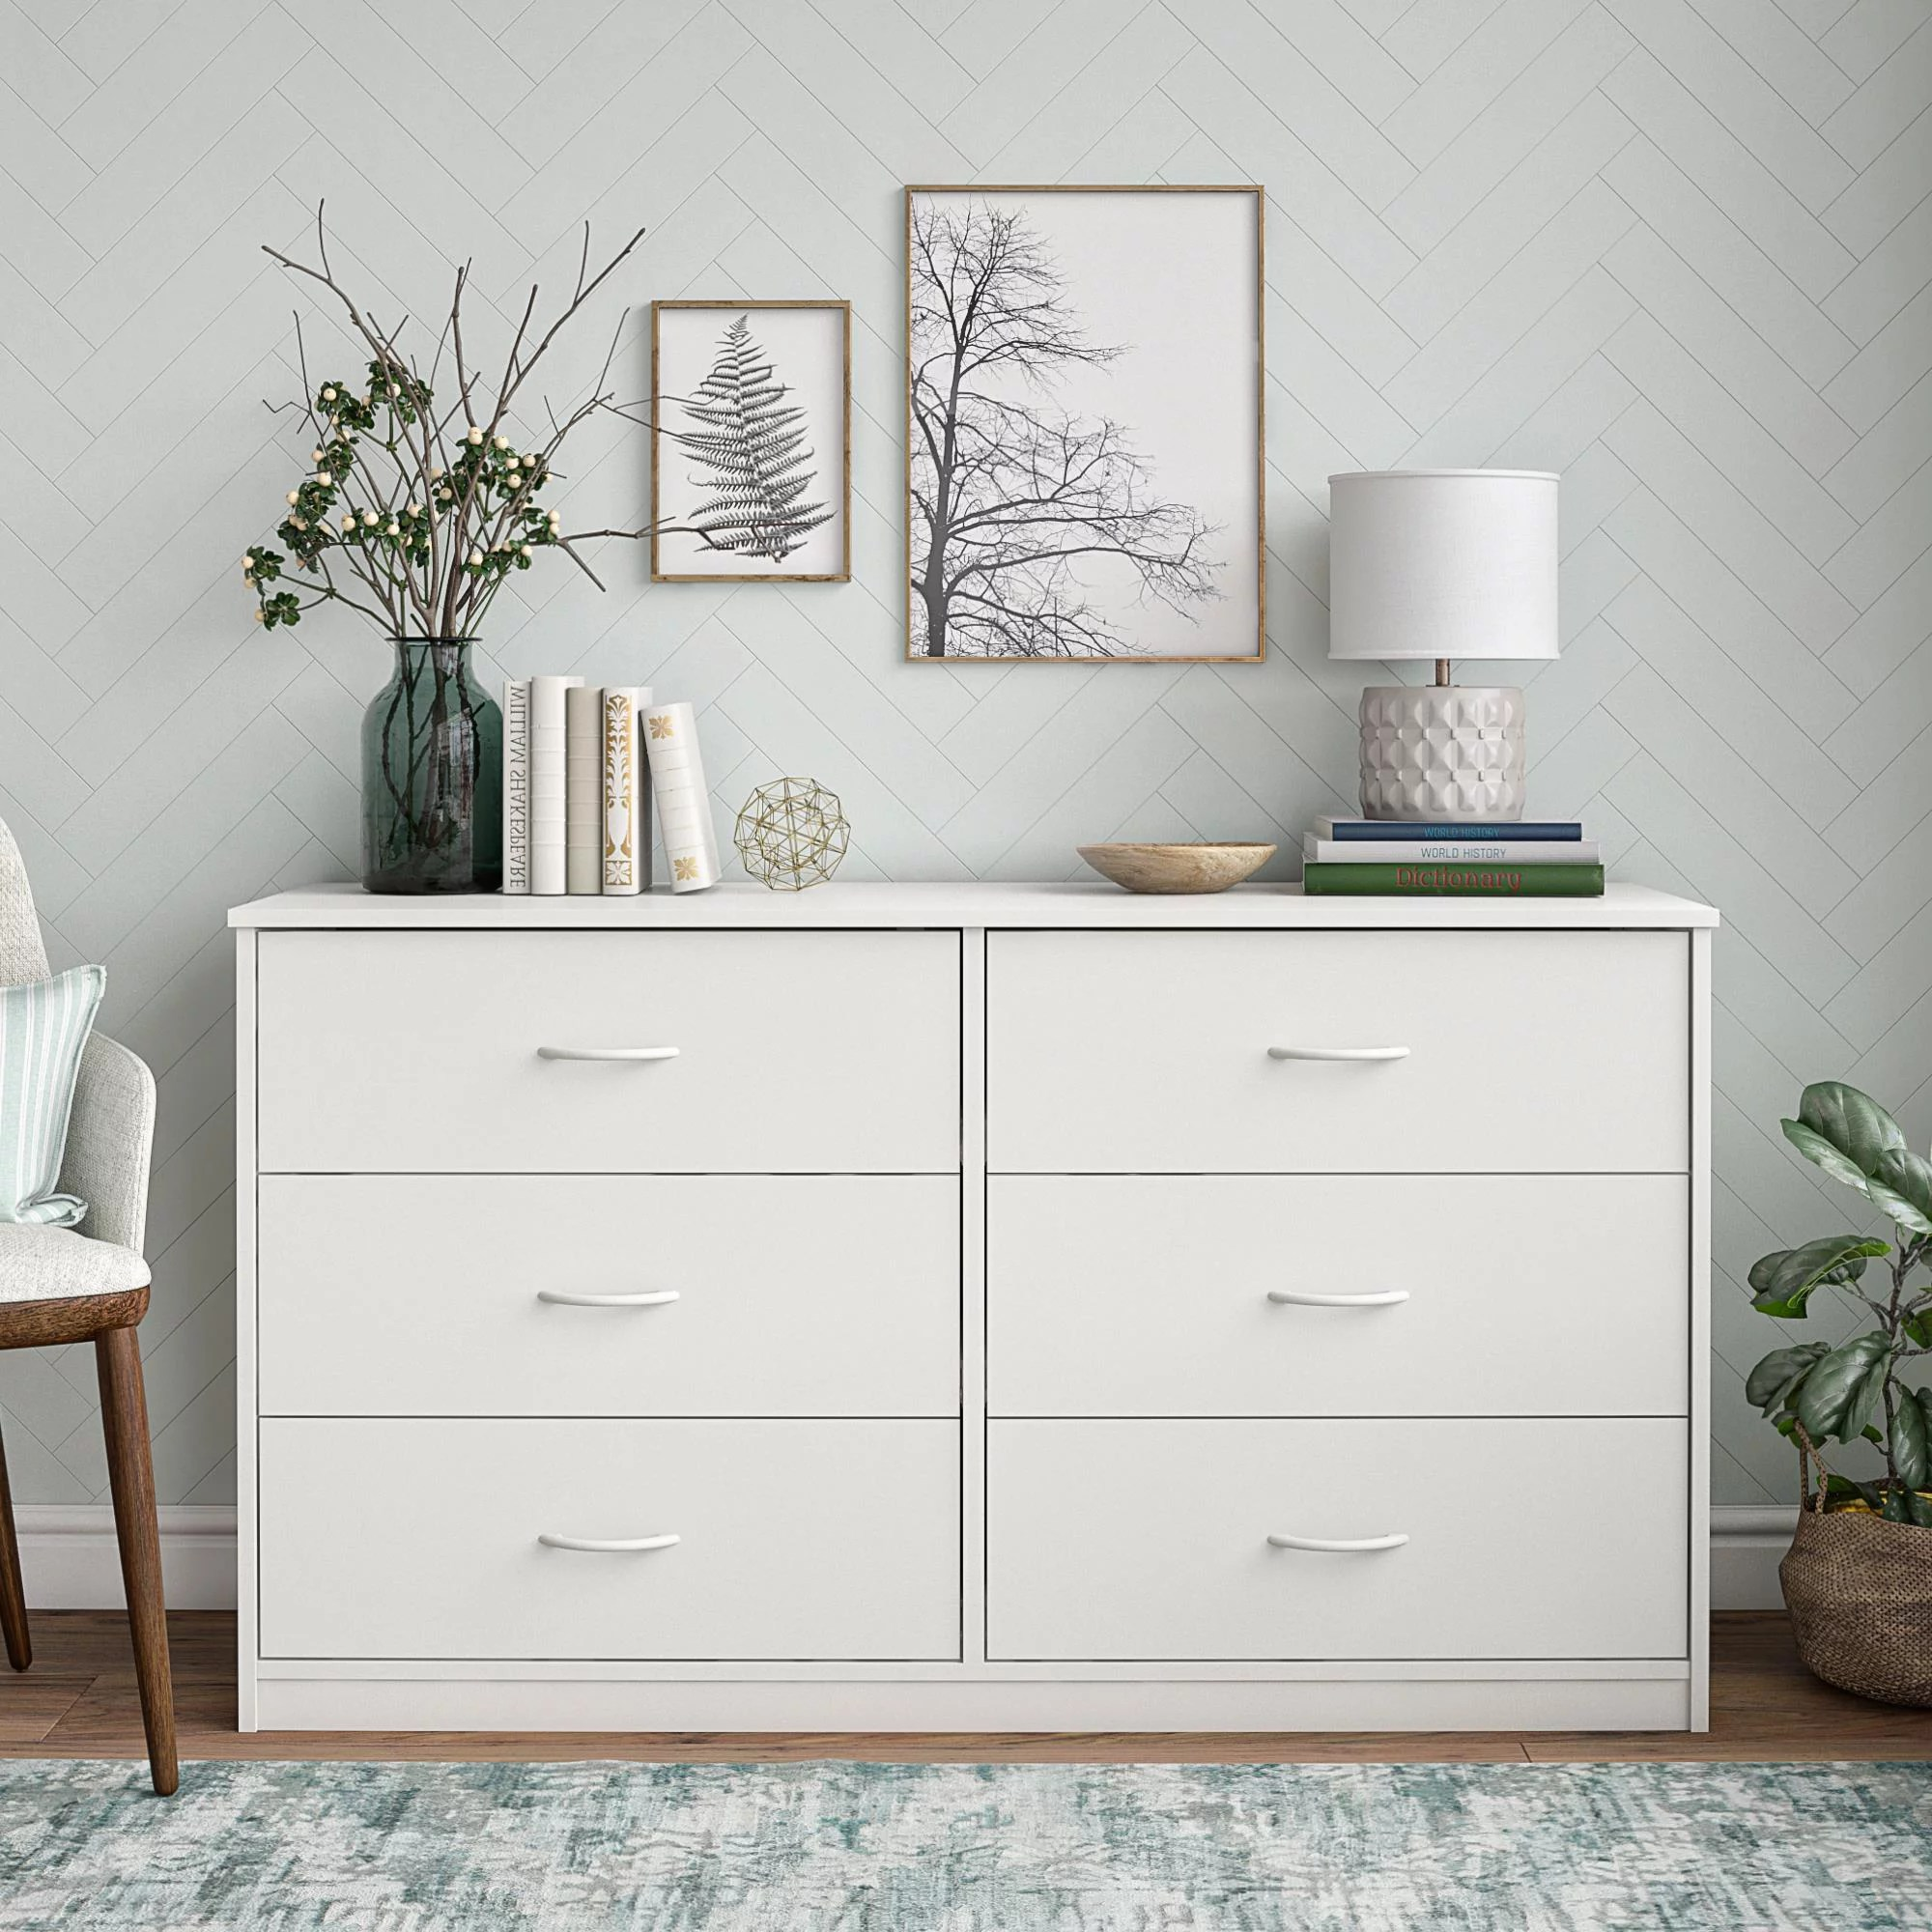 mainstays classic 6 drawer dresser white finish walmart com